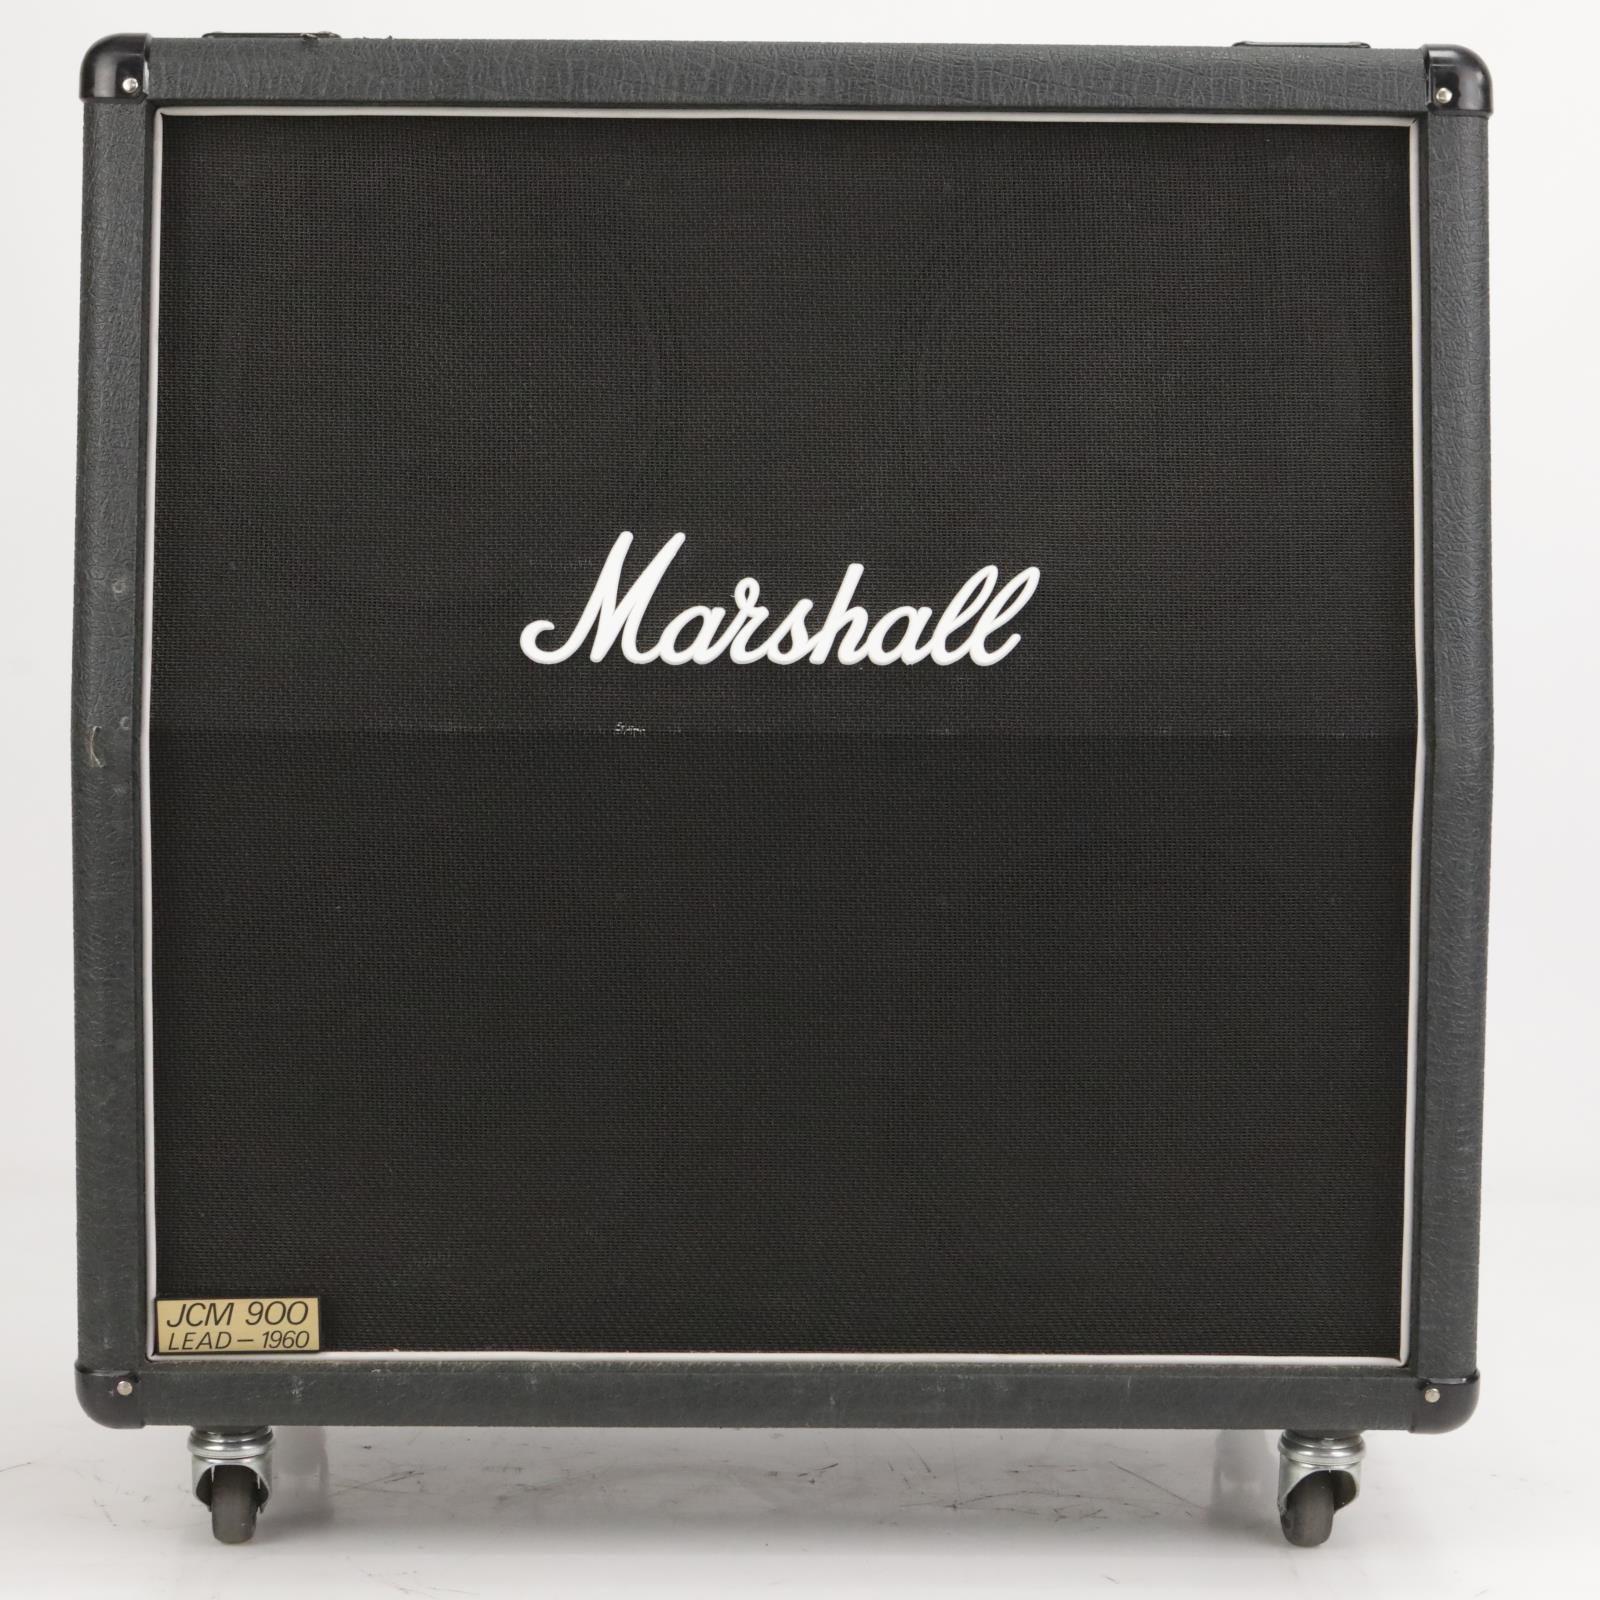 Marshall JCM 900 Lead 1960A 4x12 300w Angled Guitar Speaker Cabinet #38437